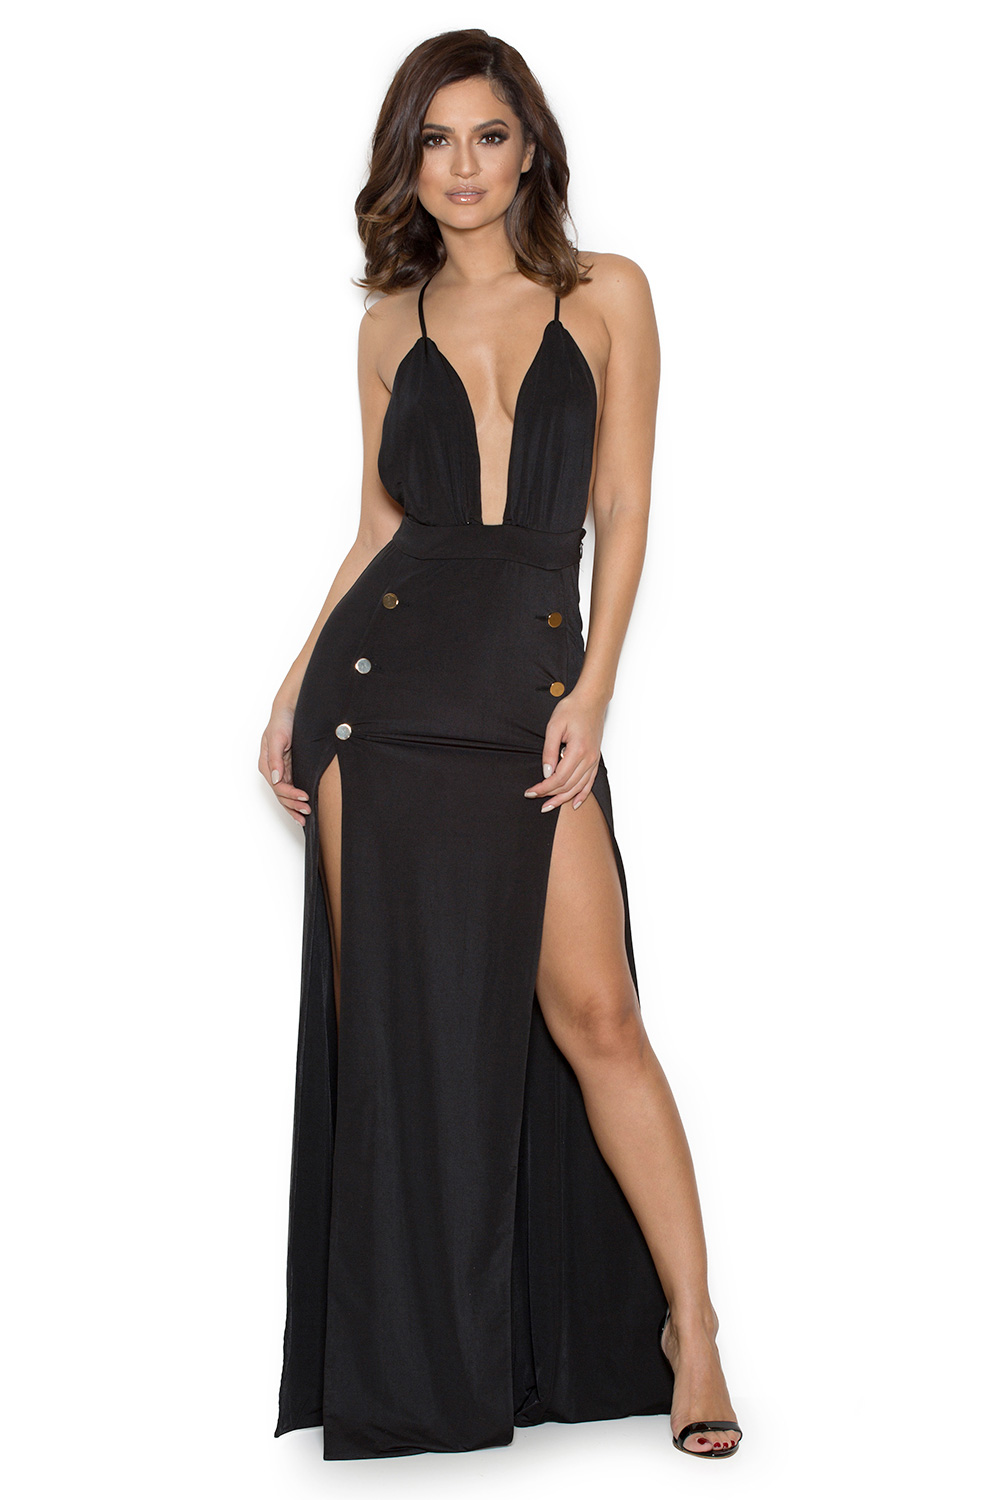 Free shipping BOTH ways on long black maxi dress with slit, from our vast selection of styles. Fast delivery, and 24/7/ real-person service with a smile. Click or call